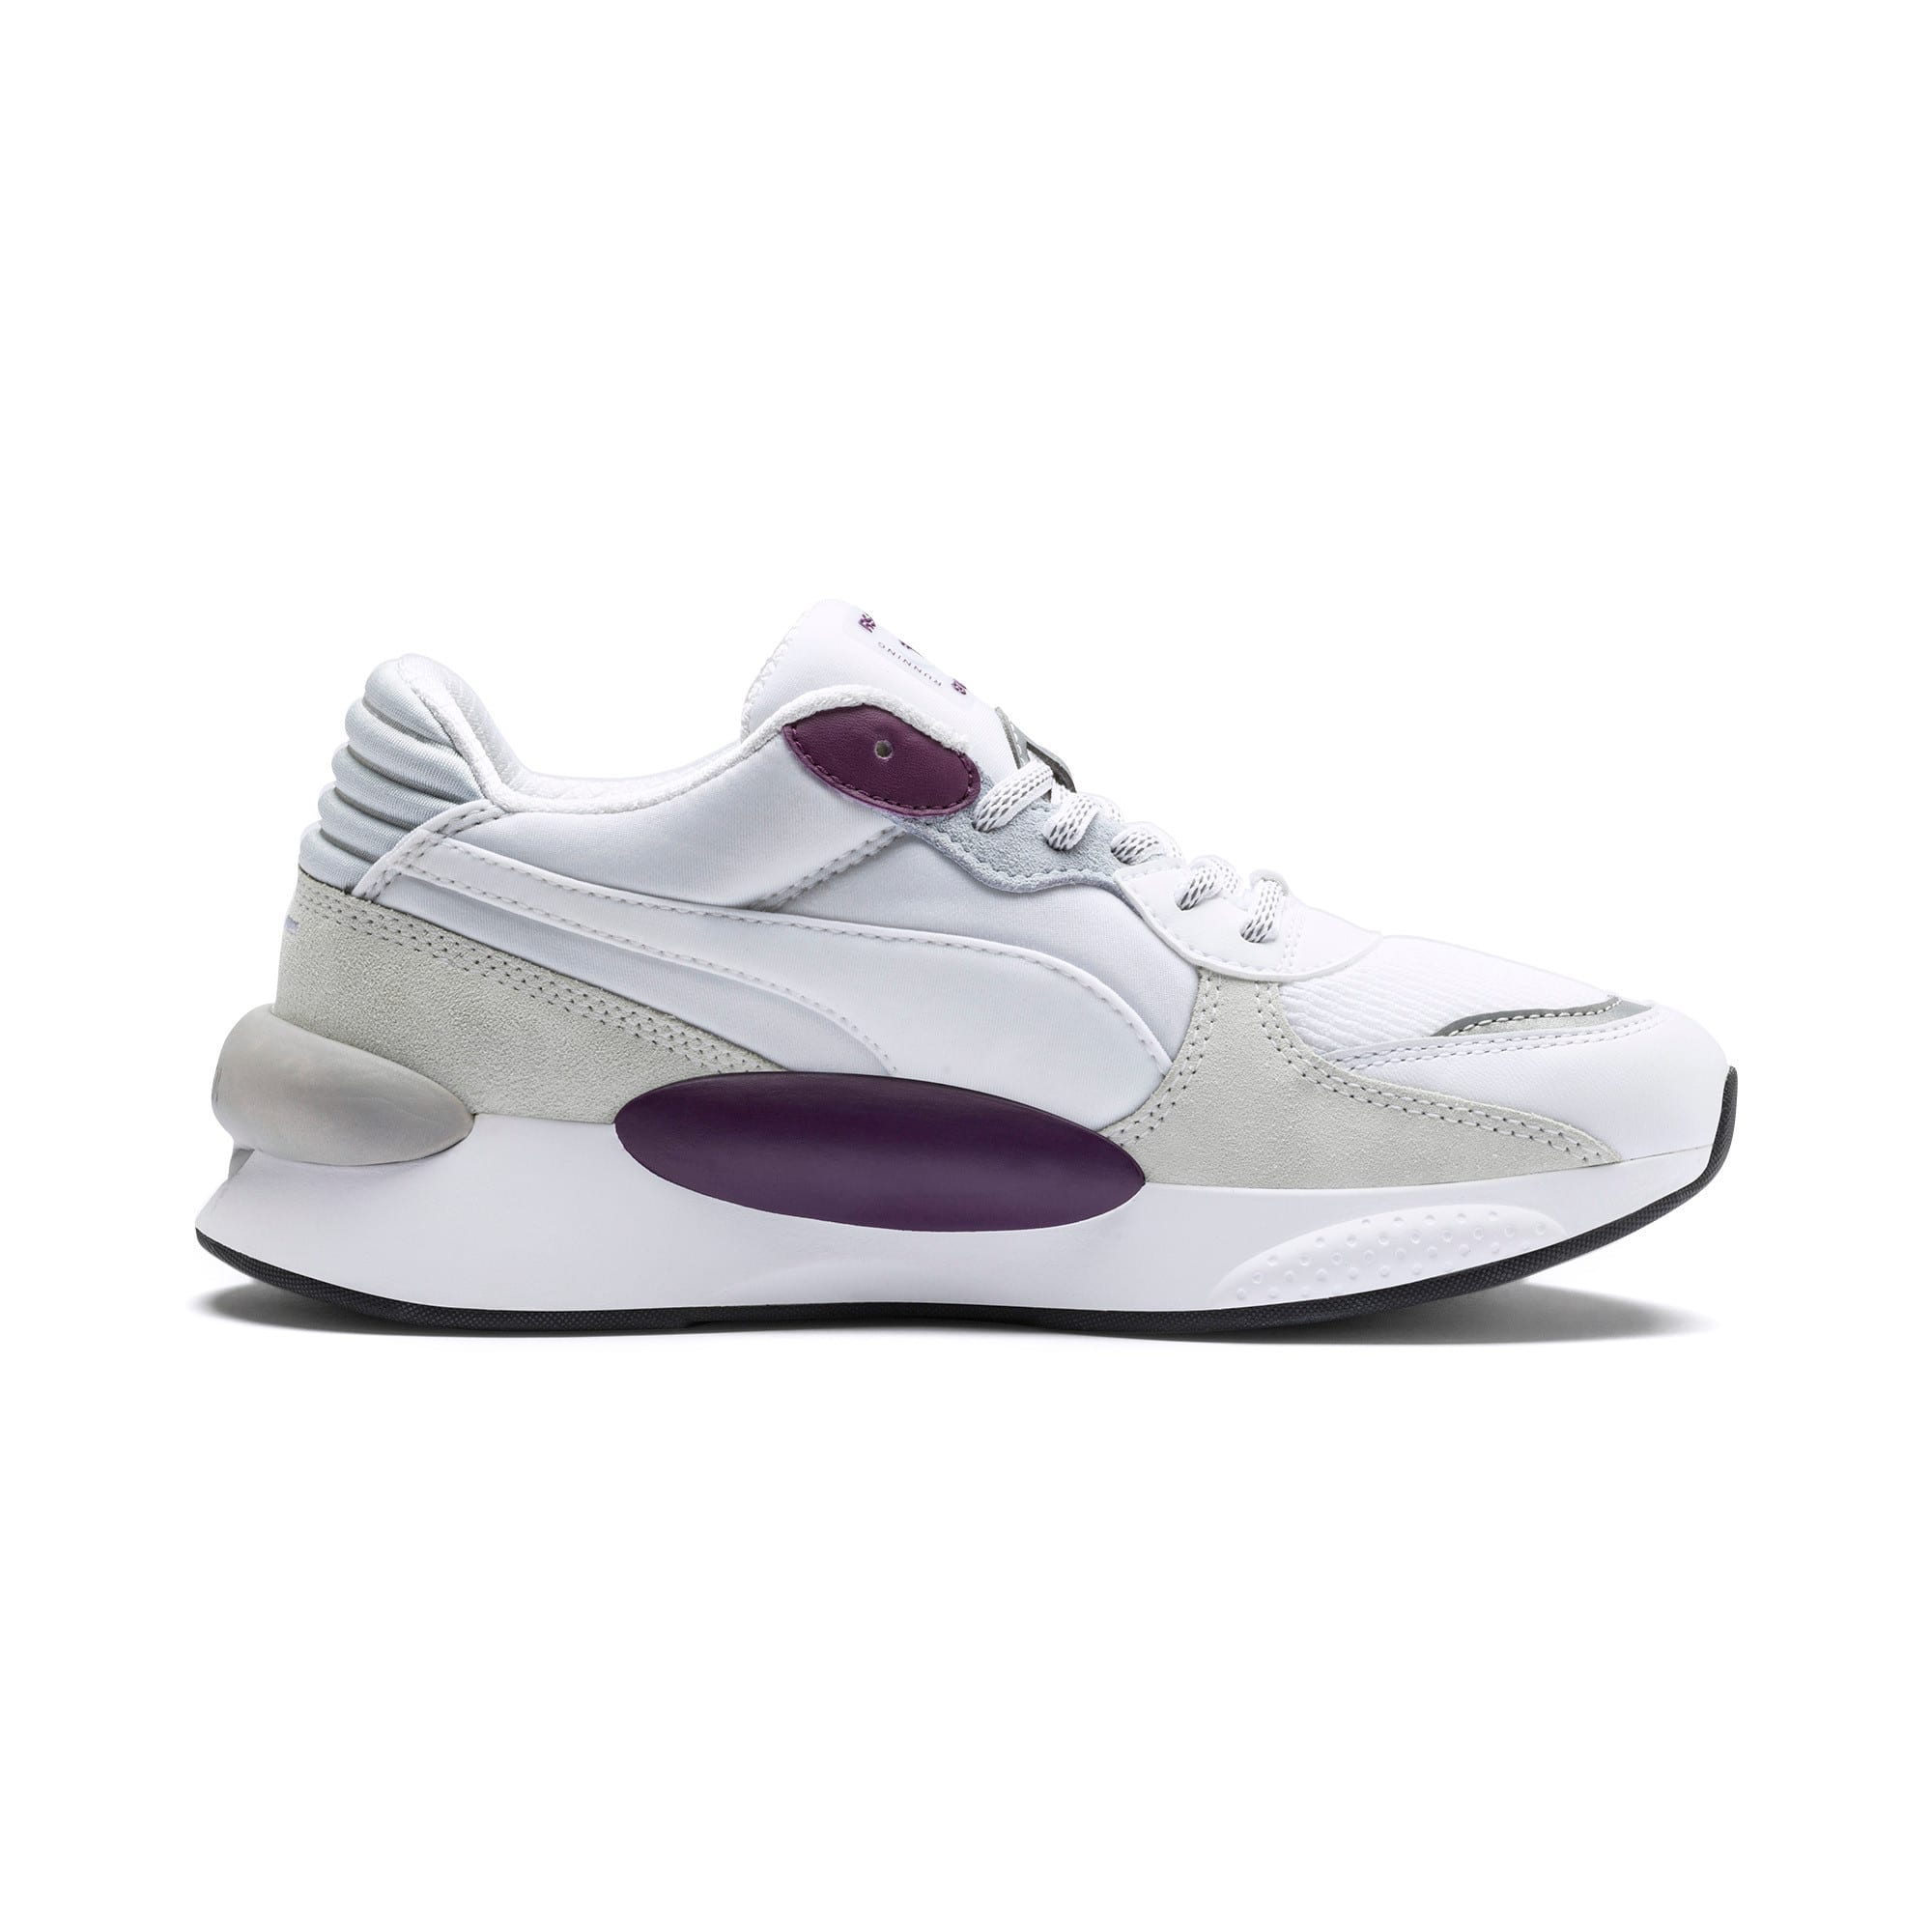 RS 9.8 Gravity Trainers, Puma White-Plum Purple, large